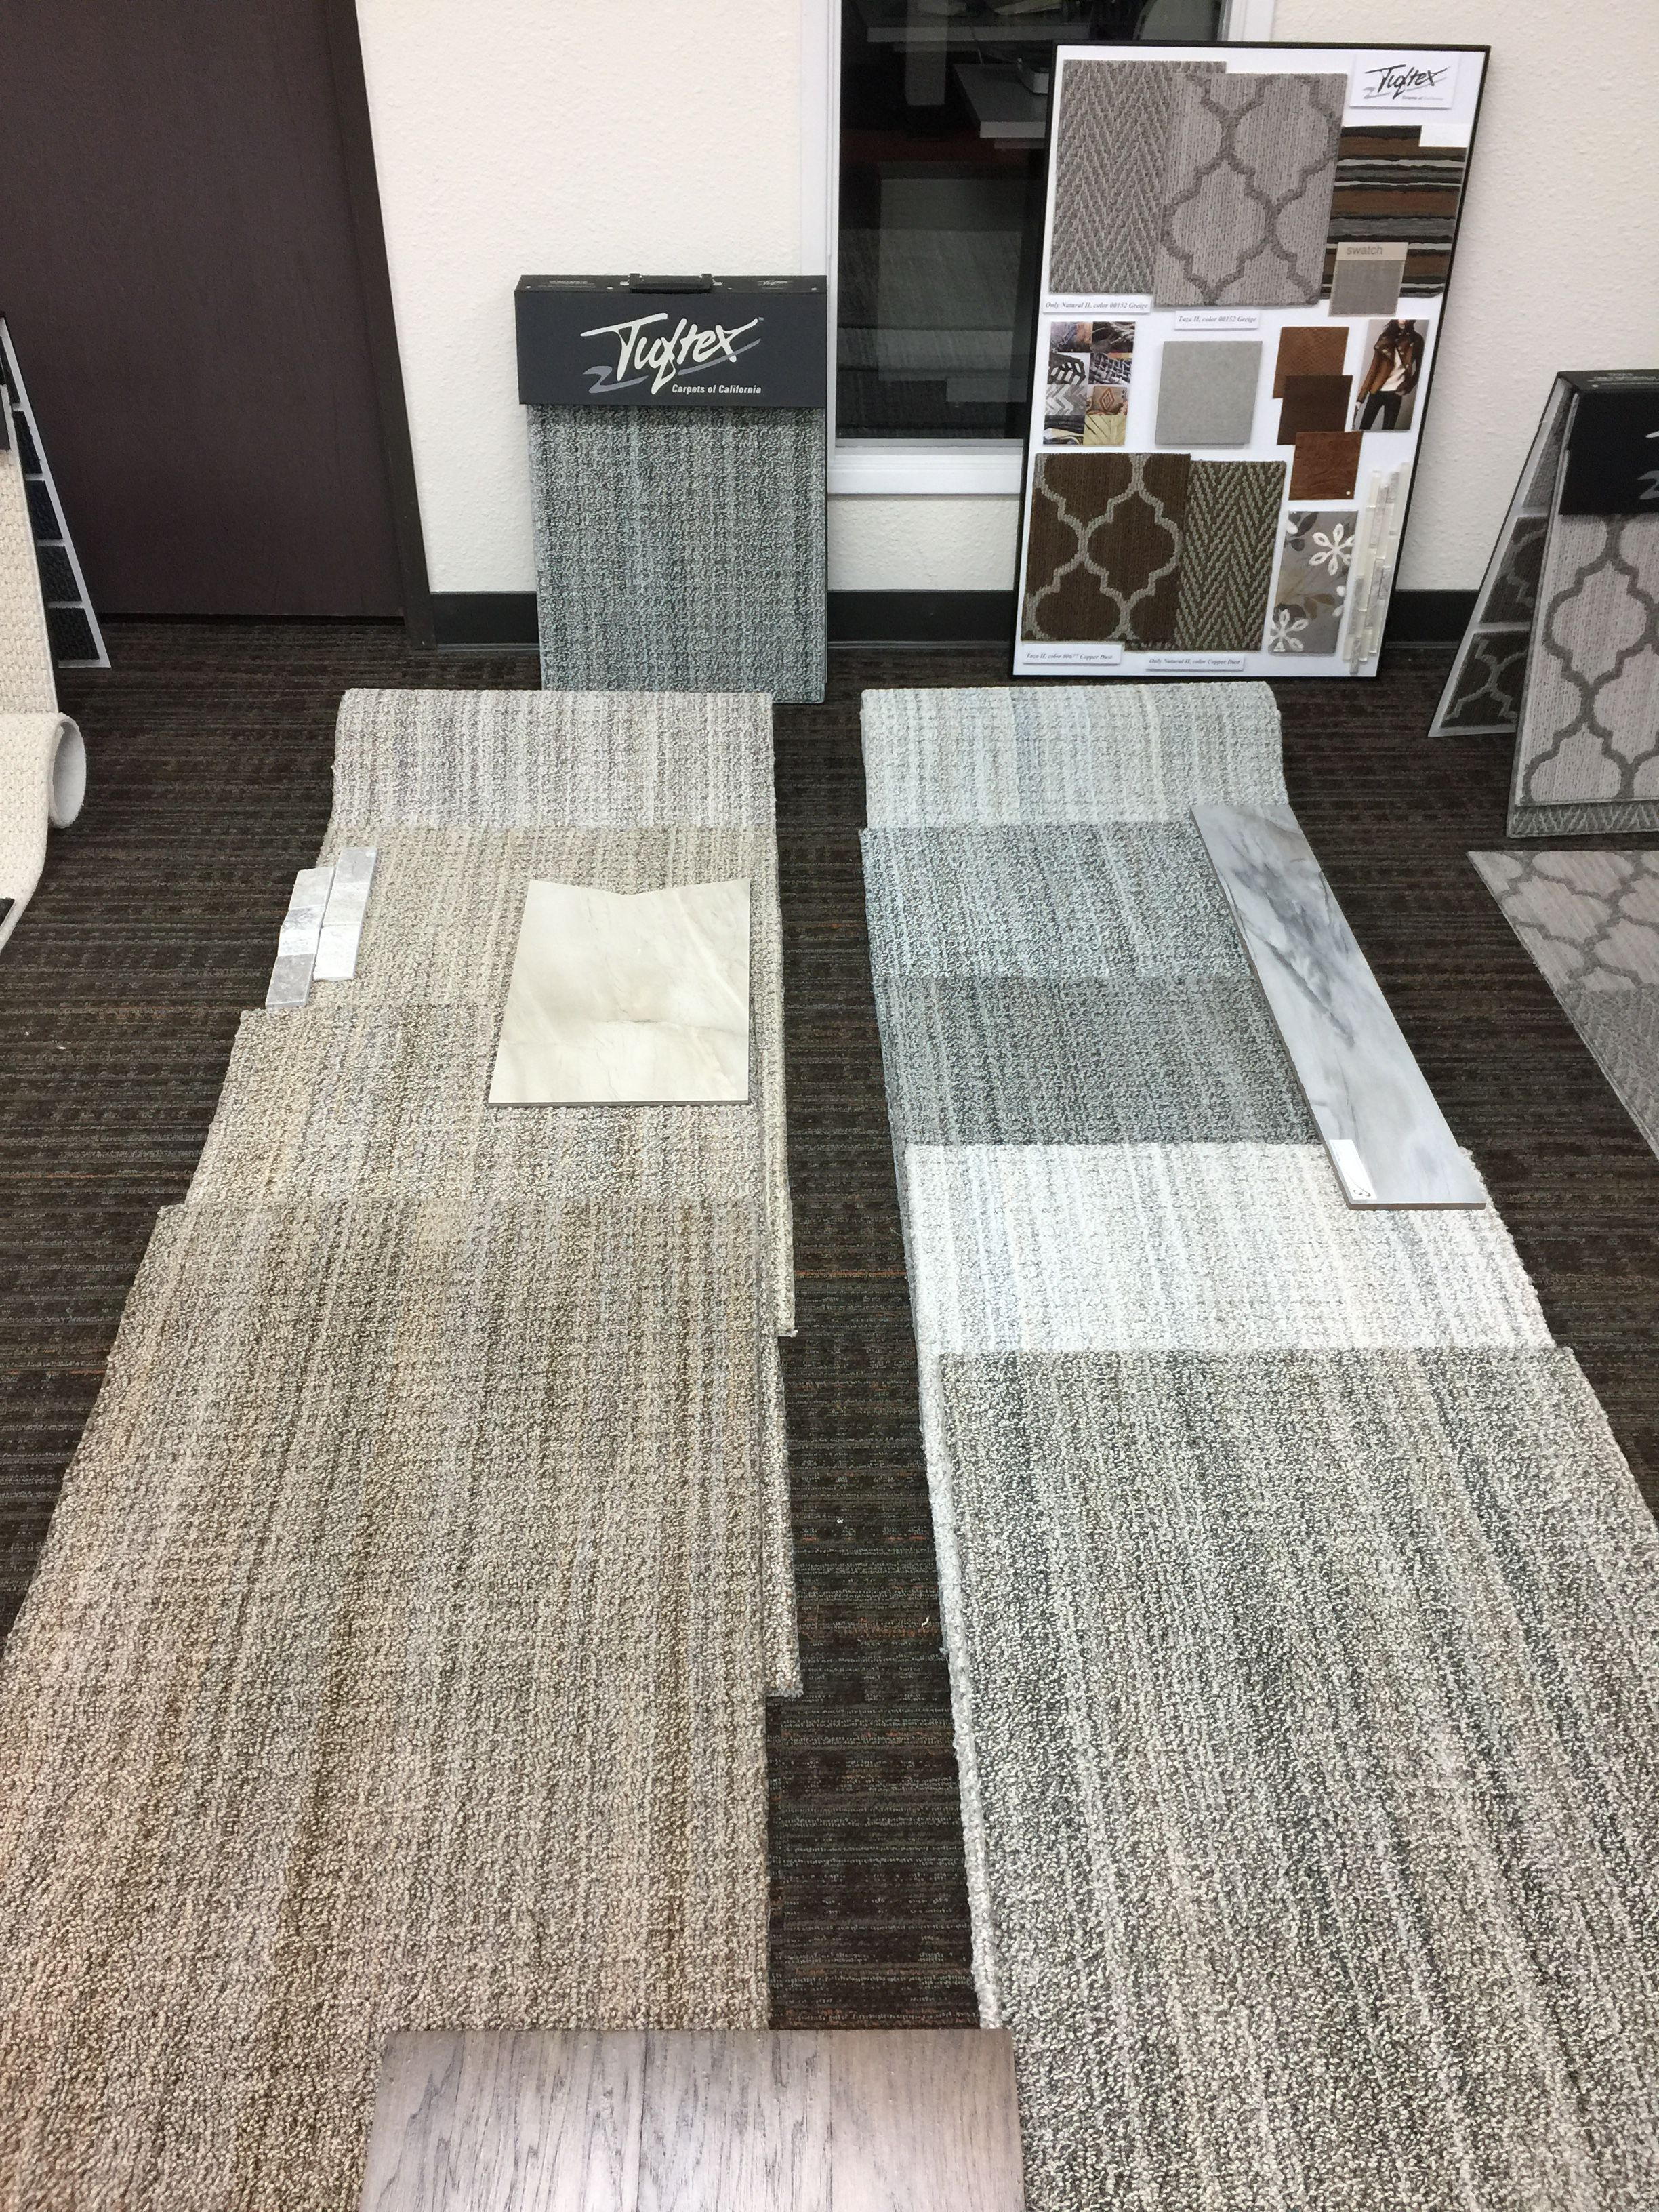 2017 New Tuftex Carpet Style! Look for it at any Shaw ...